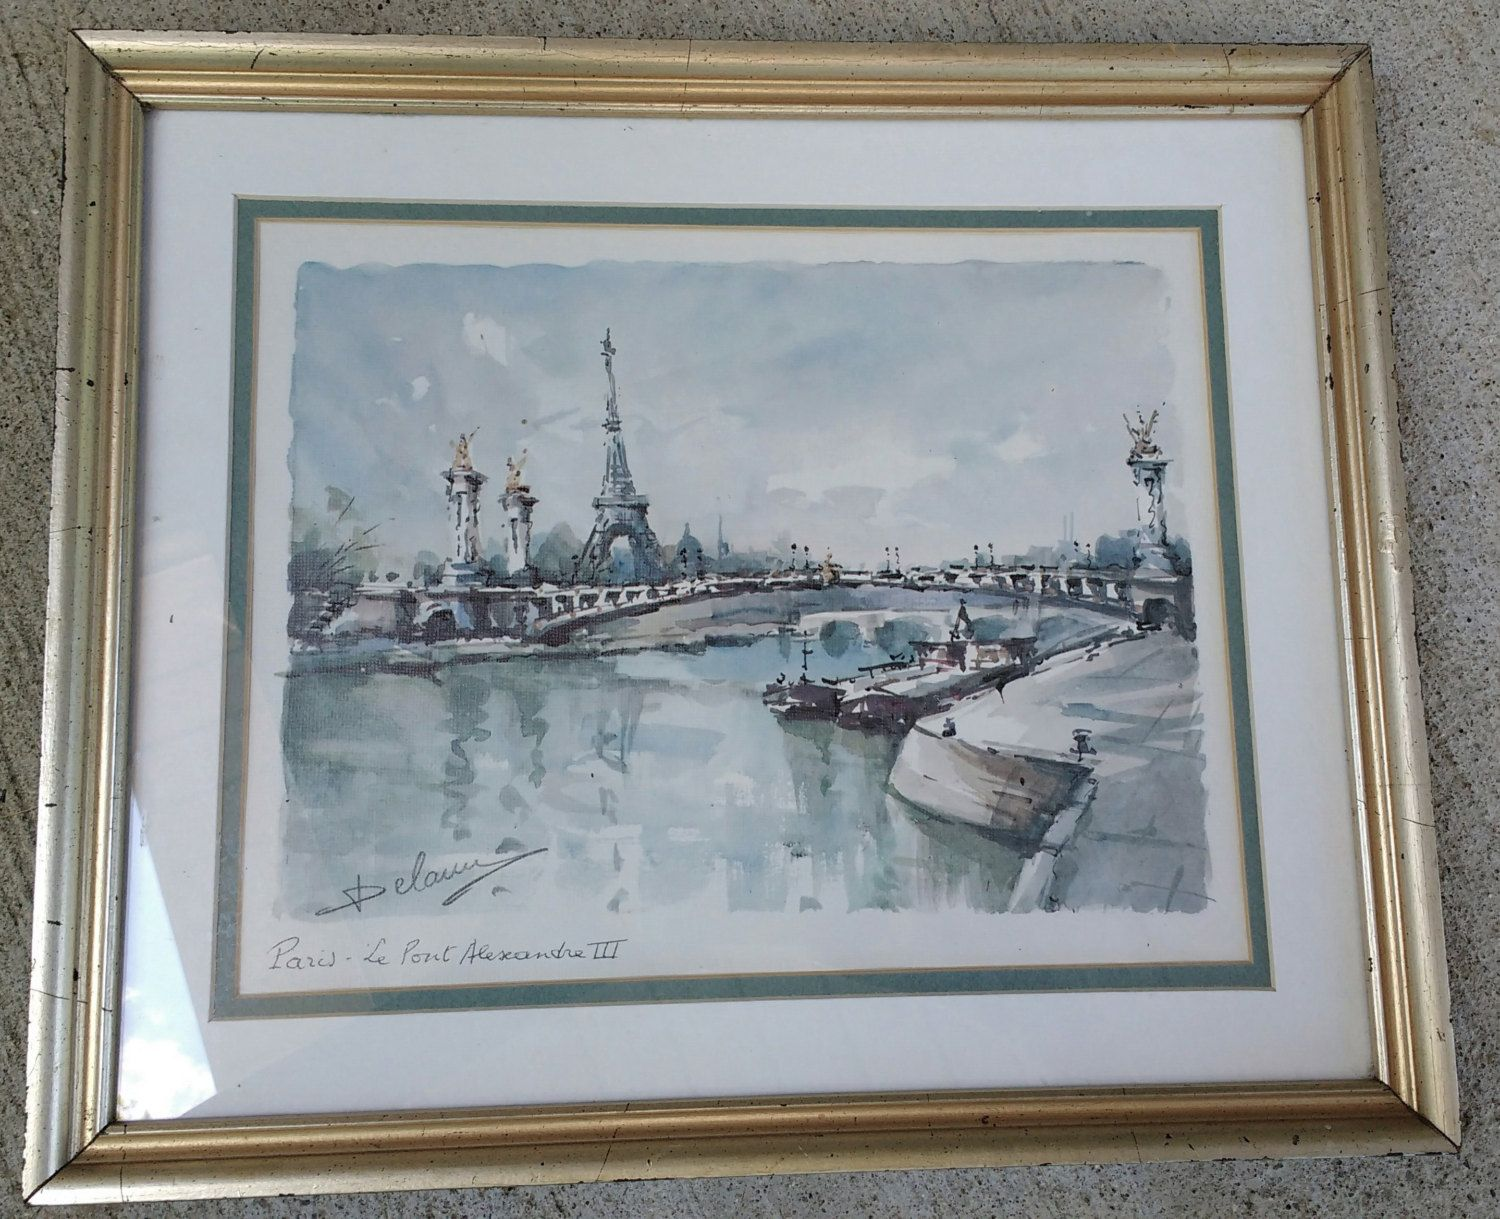 Vintage Lucien Delarue Watercolor 50 S Print Paris Le Pont Alexandre Iii Eiffel Tower Pastel French Artwork Matted French Artwork Paintings Prints Painting